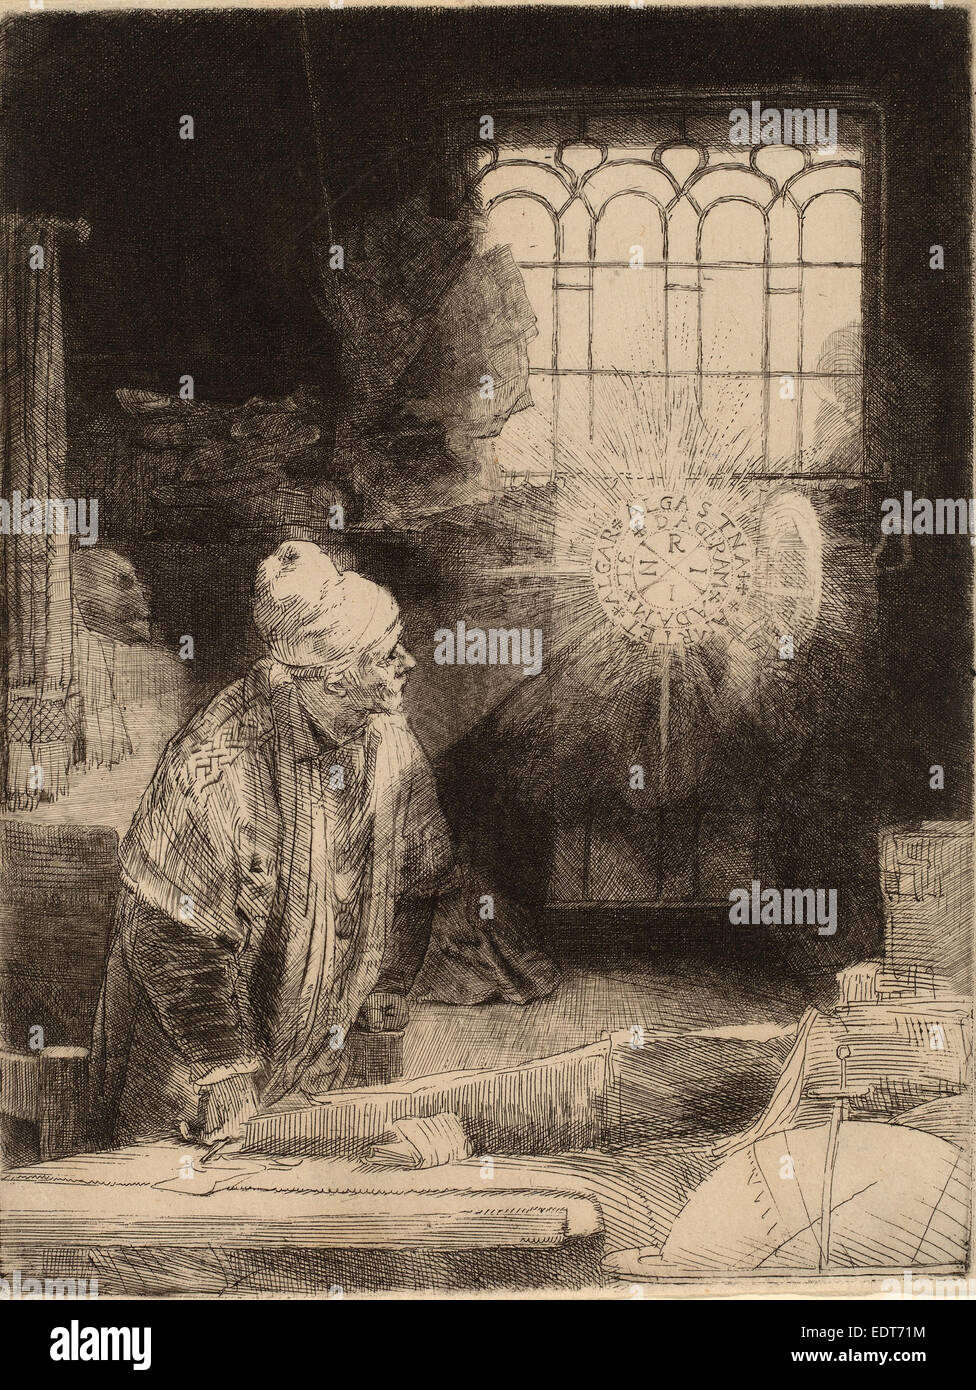 Rembrandt van Rijn (Dutch, 1606 - 1669), Faust, c. 1652, etching, drypoint and burin Stock Photo